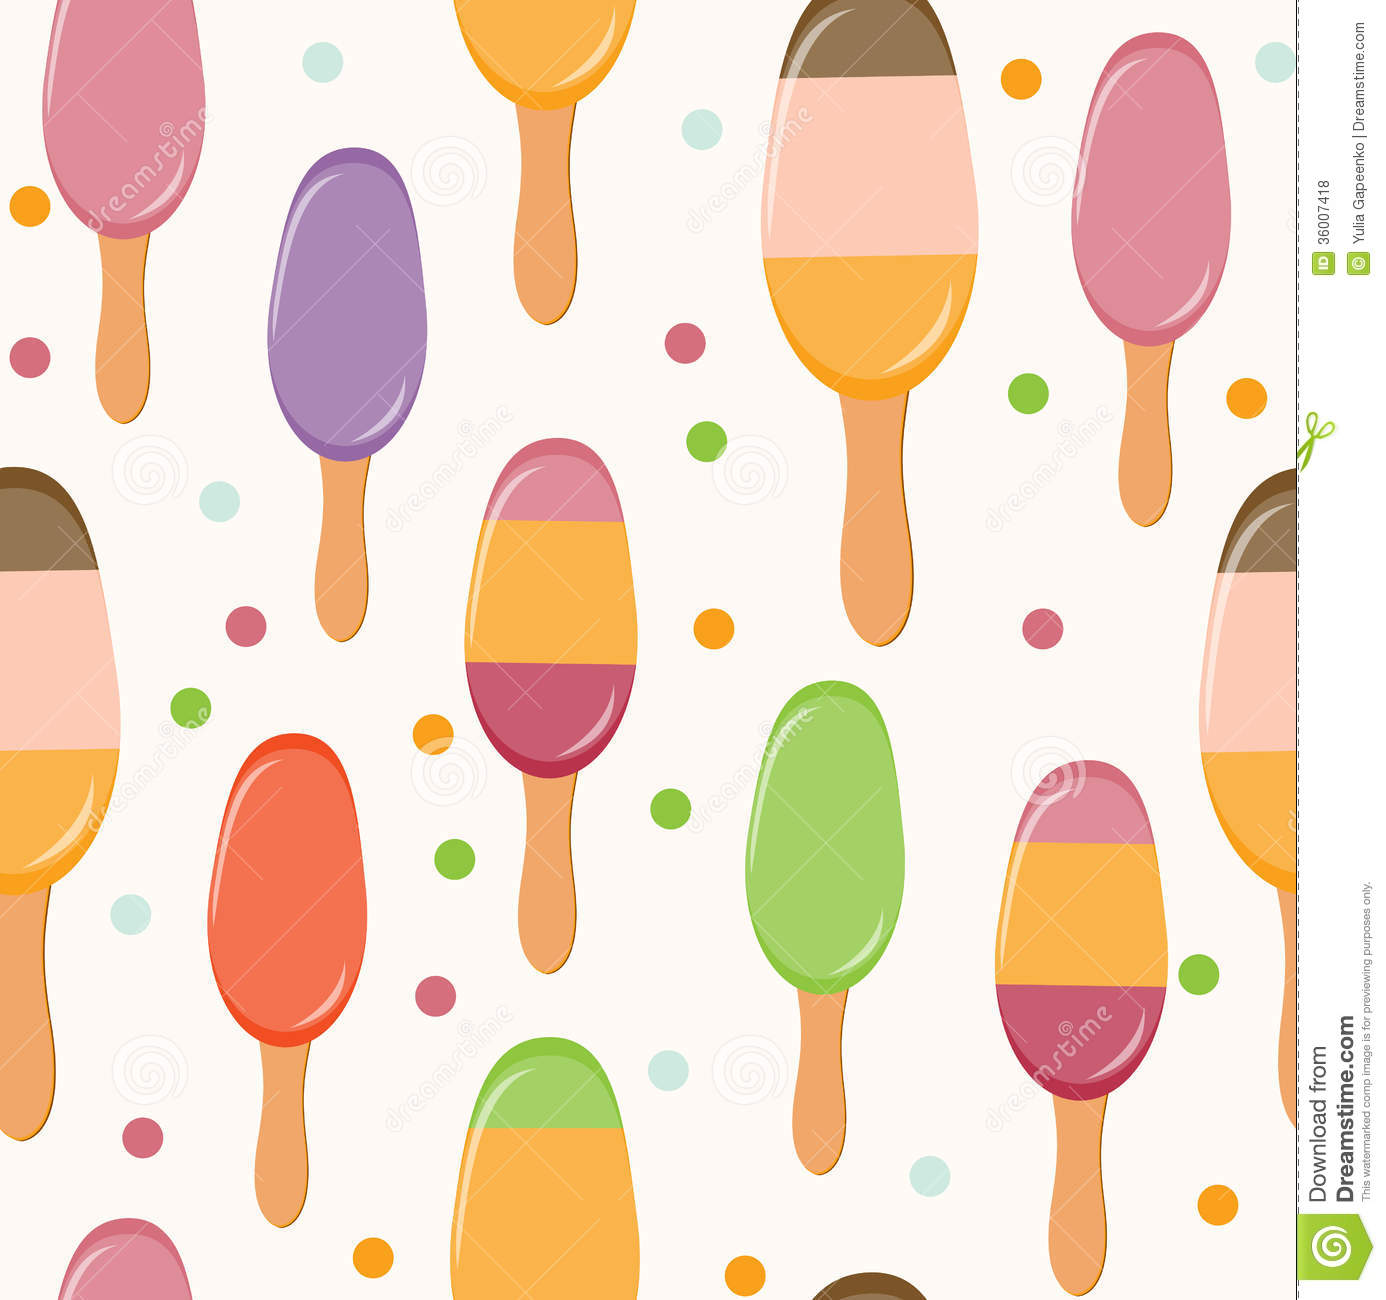 Seamless Ice Cream Wallpaper Royalty Free Stock Images: Retro Ice Cream Seamless Pattern Background. Royalty Free